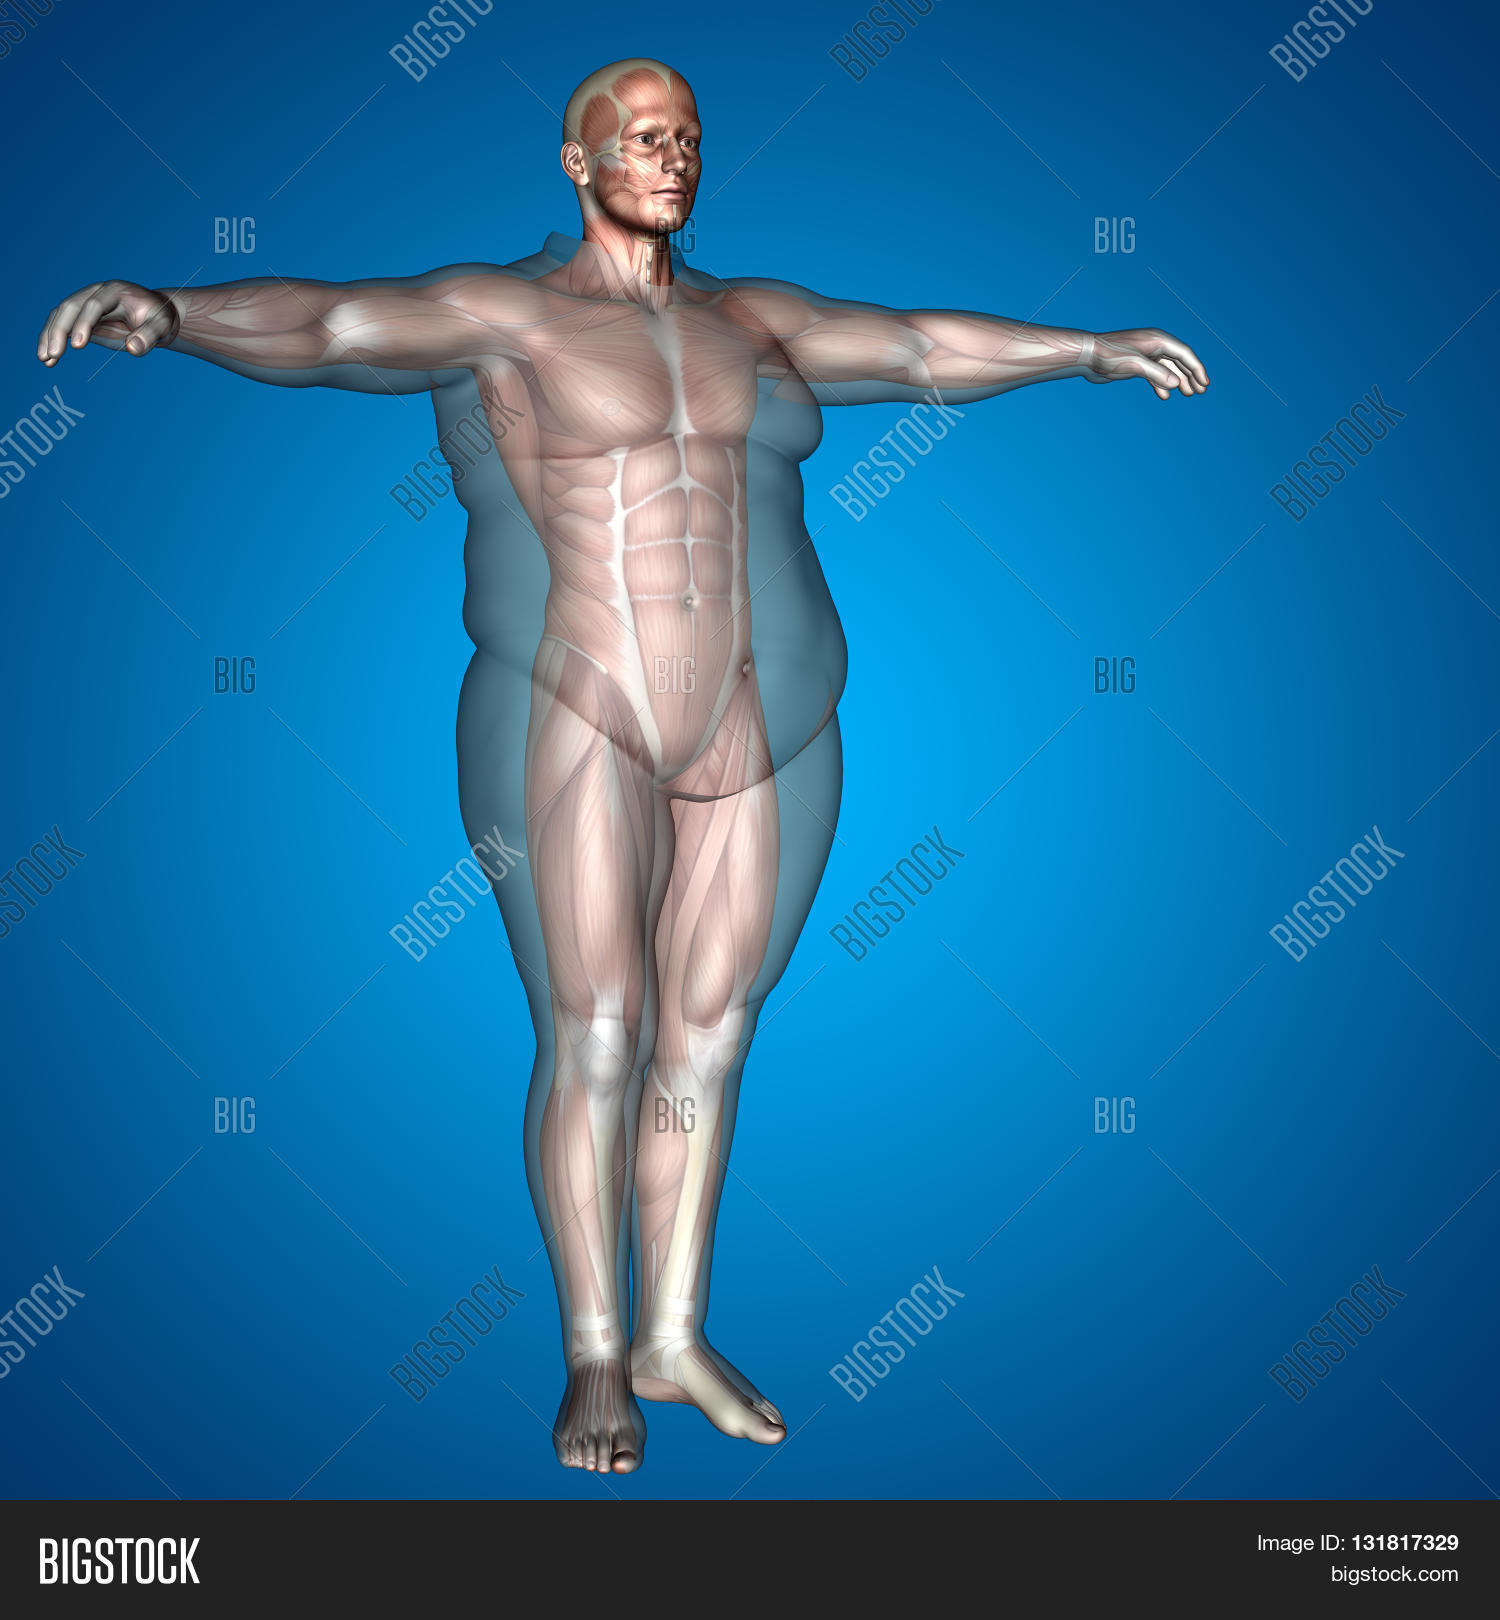 6f437b9accf Concept, conceptual 3D illustration fat overweight vs slim fit diet with  muscles young man blue